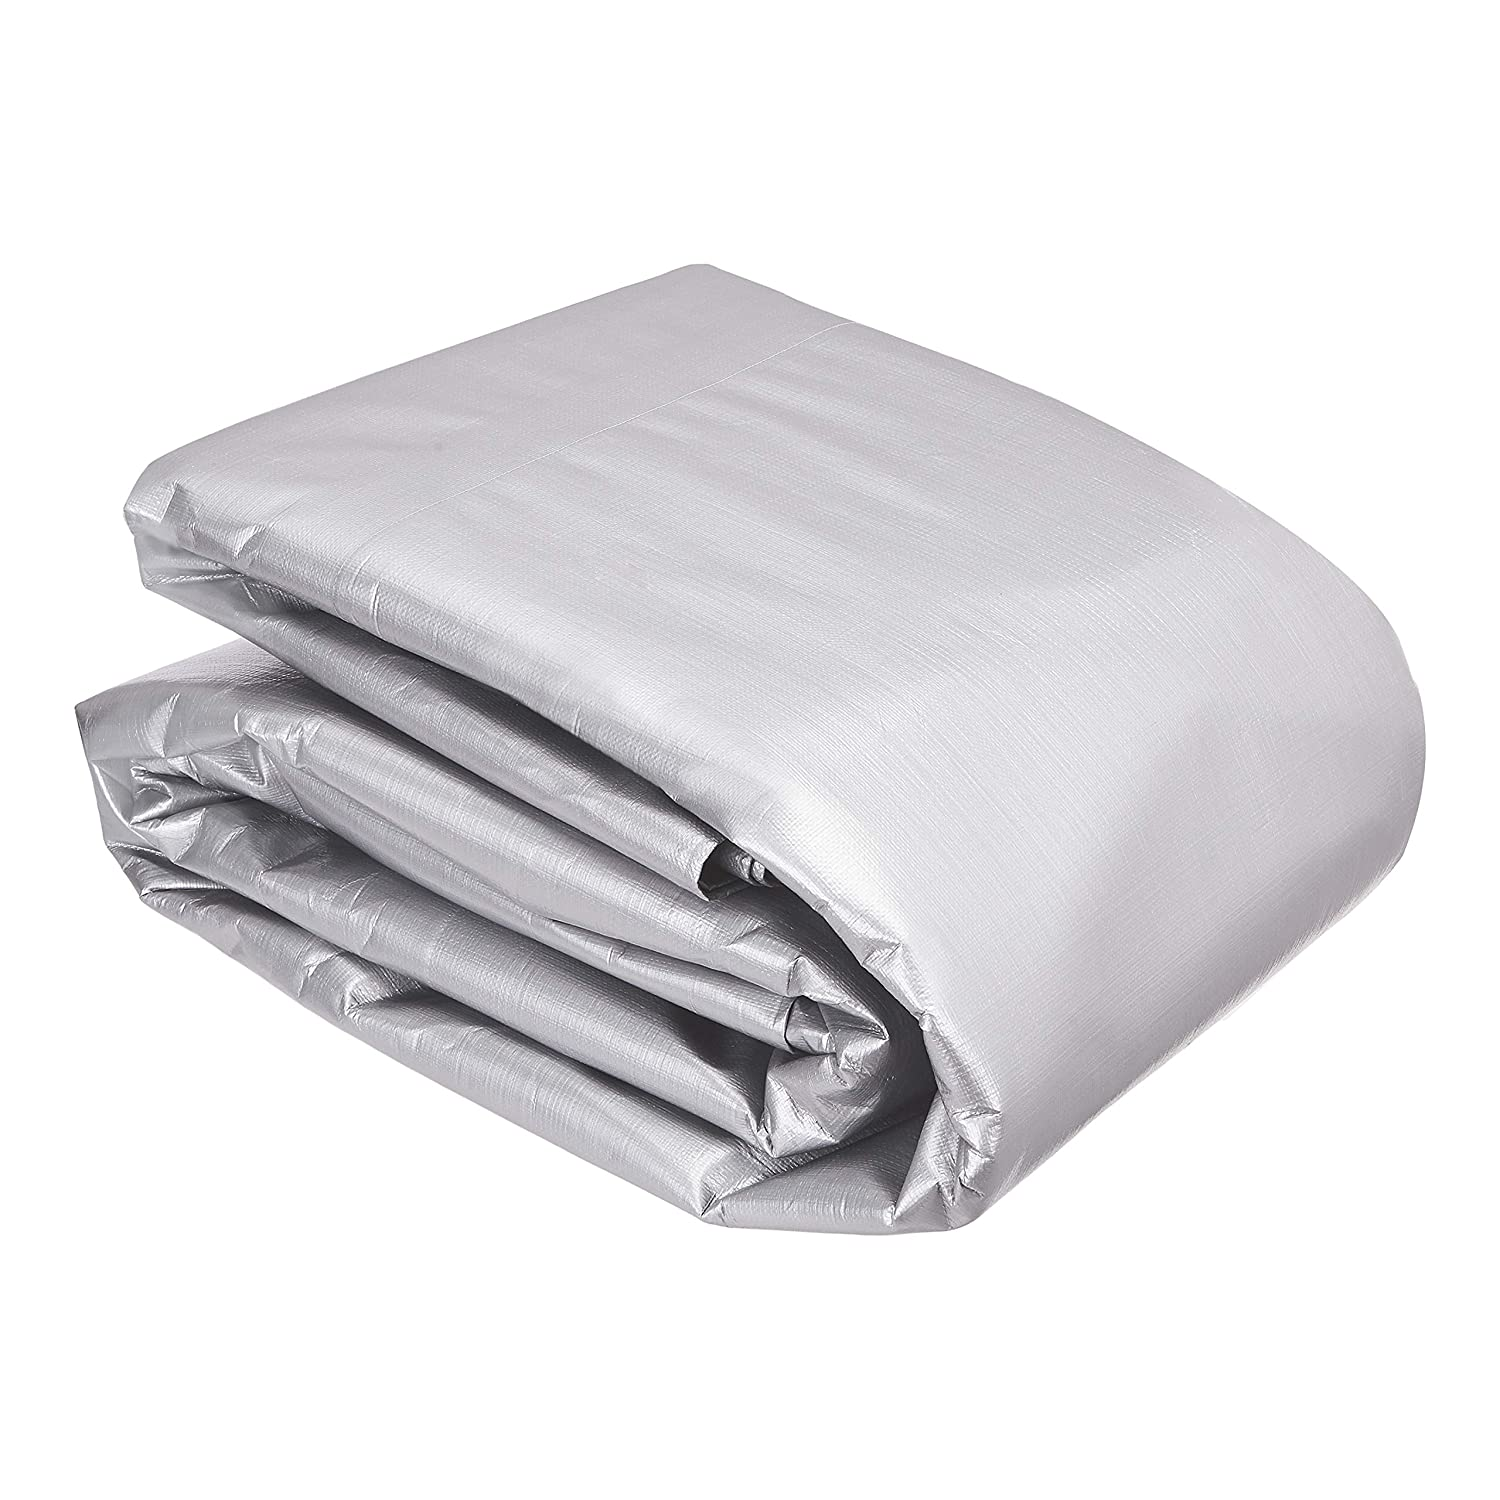 6 X 8 FT Silver//Black 3-Pack 16MIL Thick Commercial Multi Purpose Waterproof Poly Tarp Cover